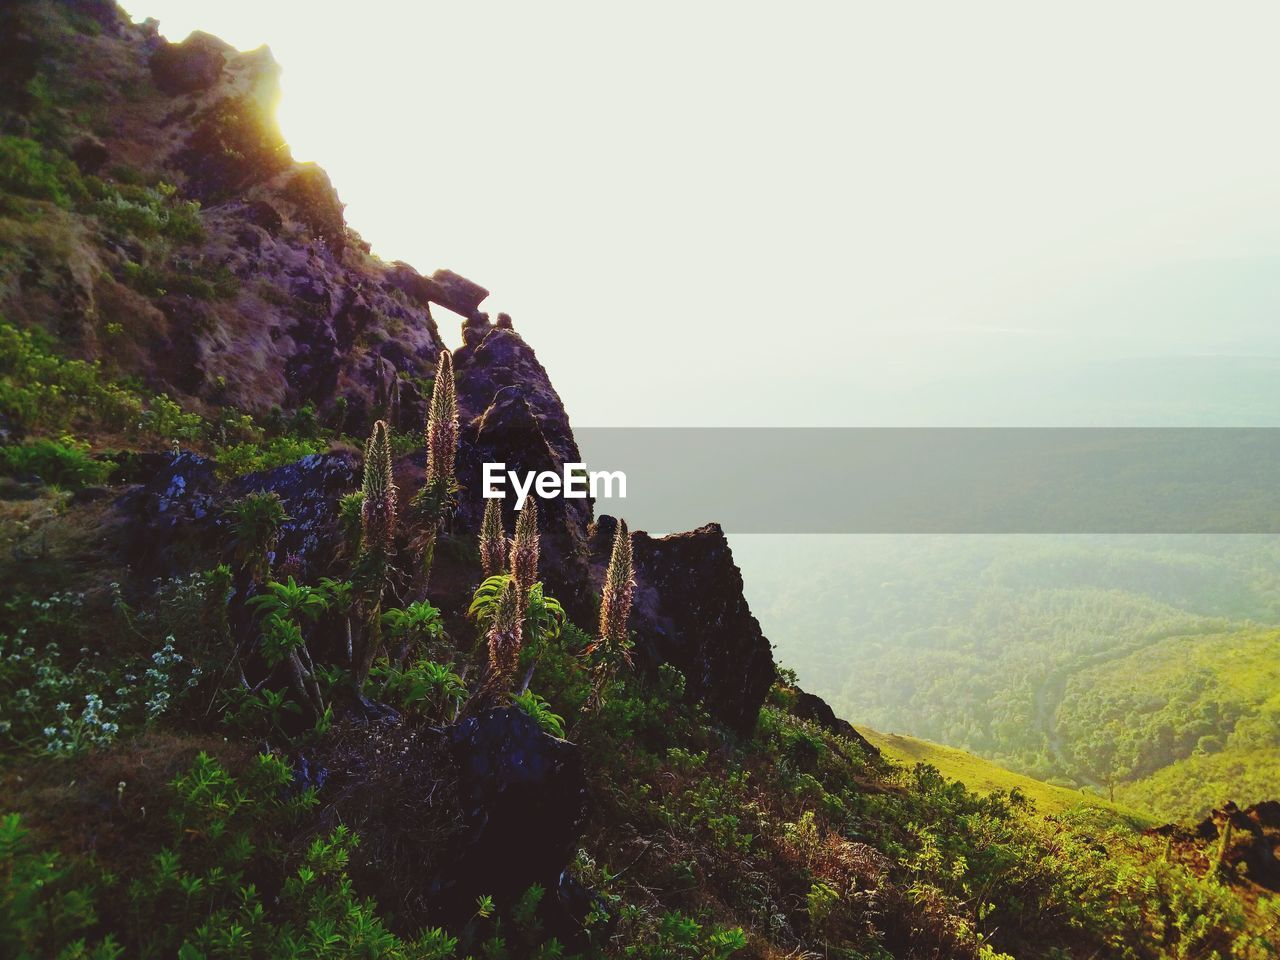 rock formation, rock - object, nature, mountain, beauty in nature, tranquility, cliff, tranquil scene, scenics, day, landscape, outdoors, physical geography, sky, adventure, no people, clear sky, scenery, mammal